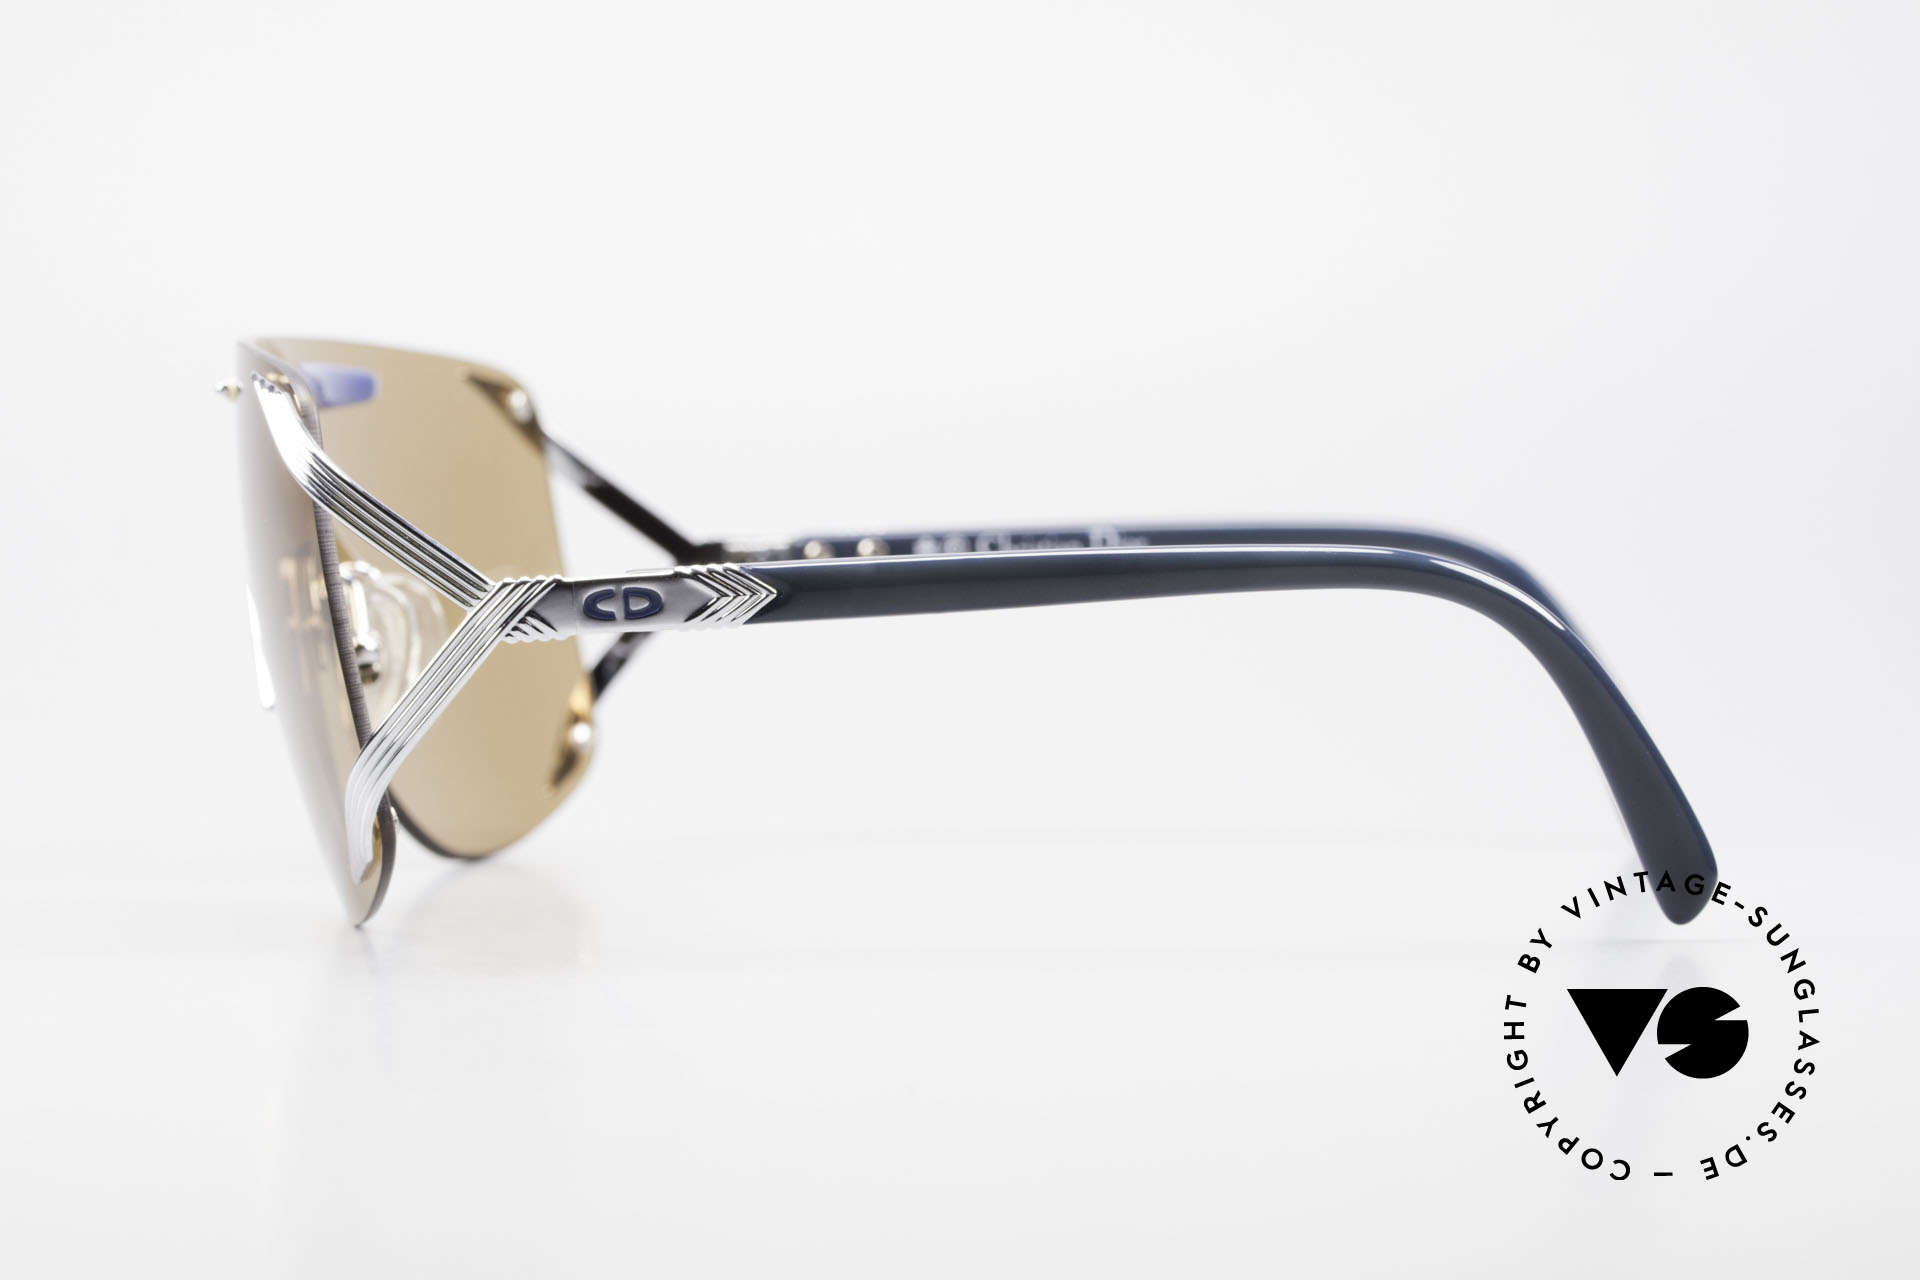 Christian Dior 2434 Panorama View Sunglasses 80s, unworn (like all our Chr. DIOR designer sunglasses), Made for Women